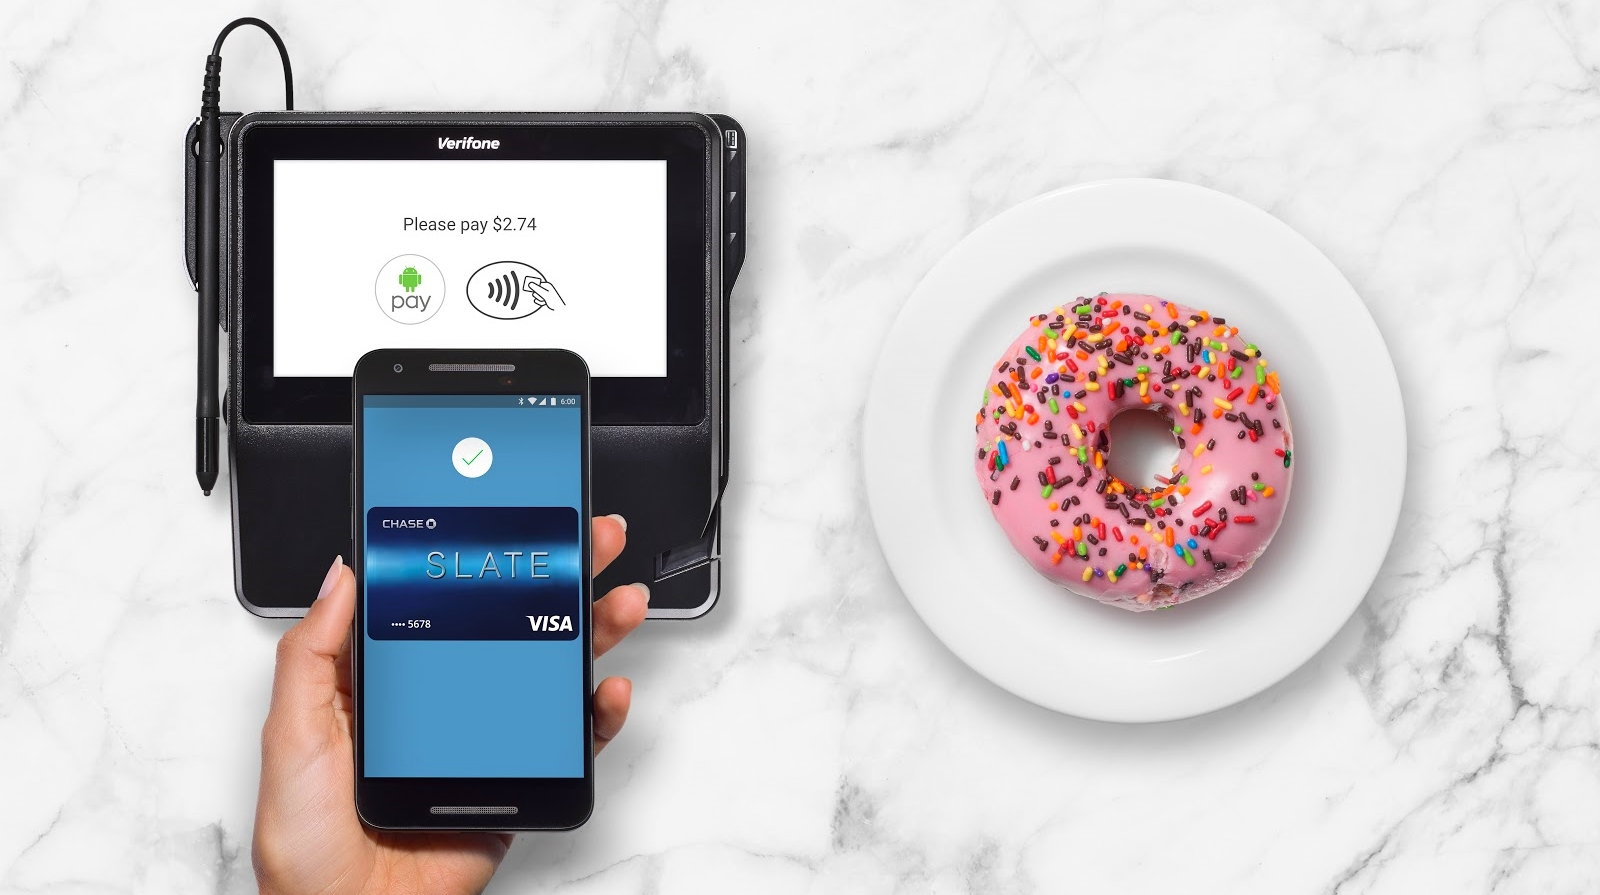 Android Pay Finally Signs Up Chase